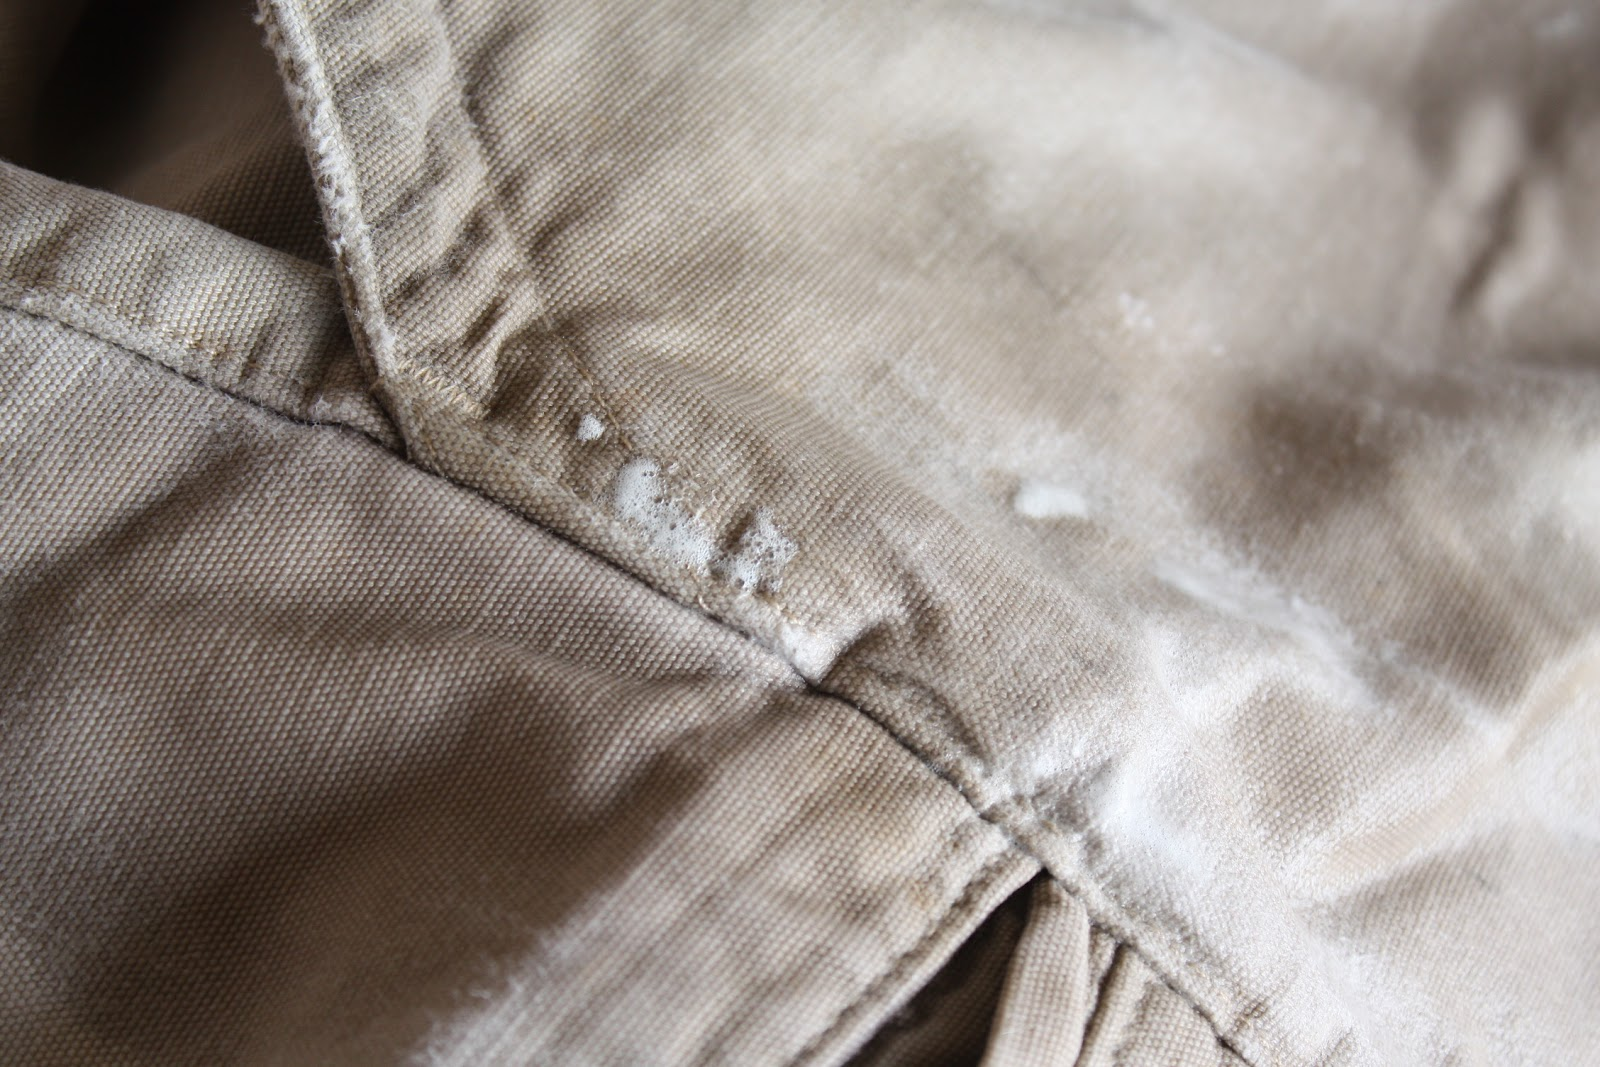 Hydrogen Peroxide To Remove Blood Stains From Clothing